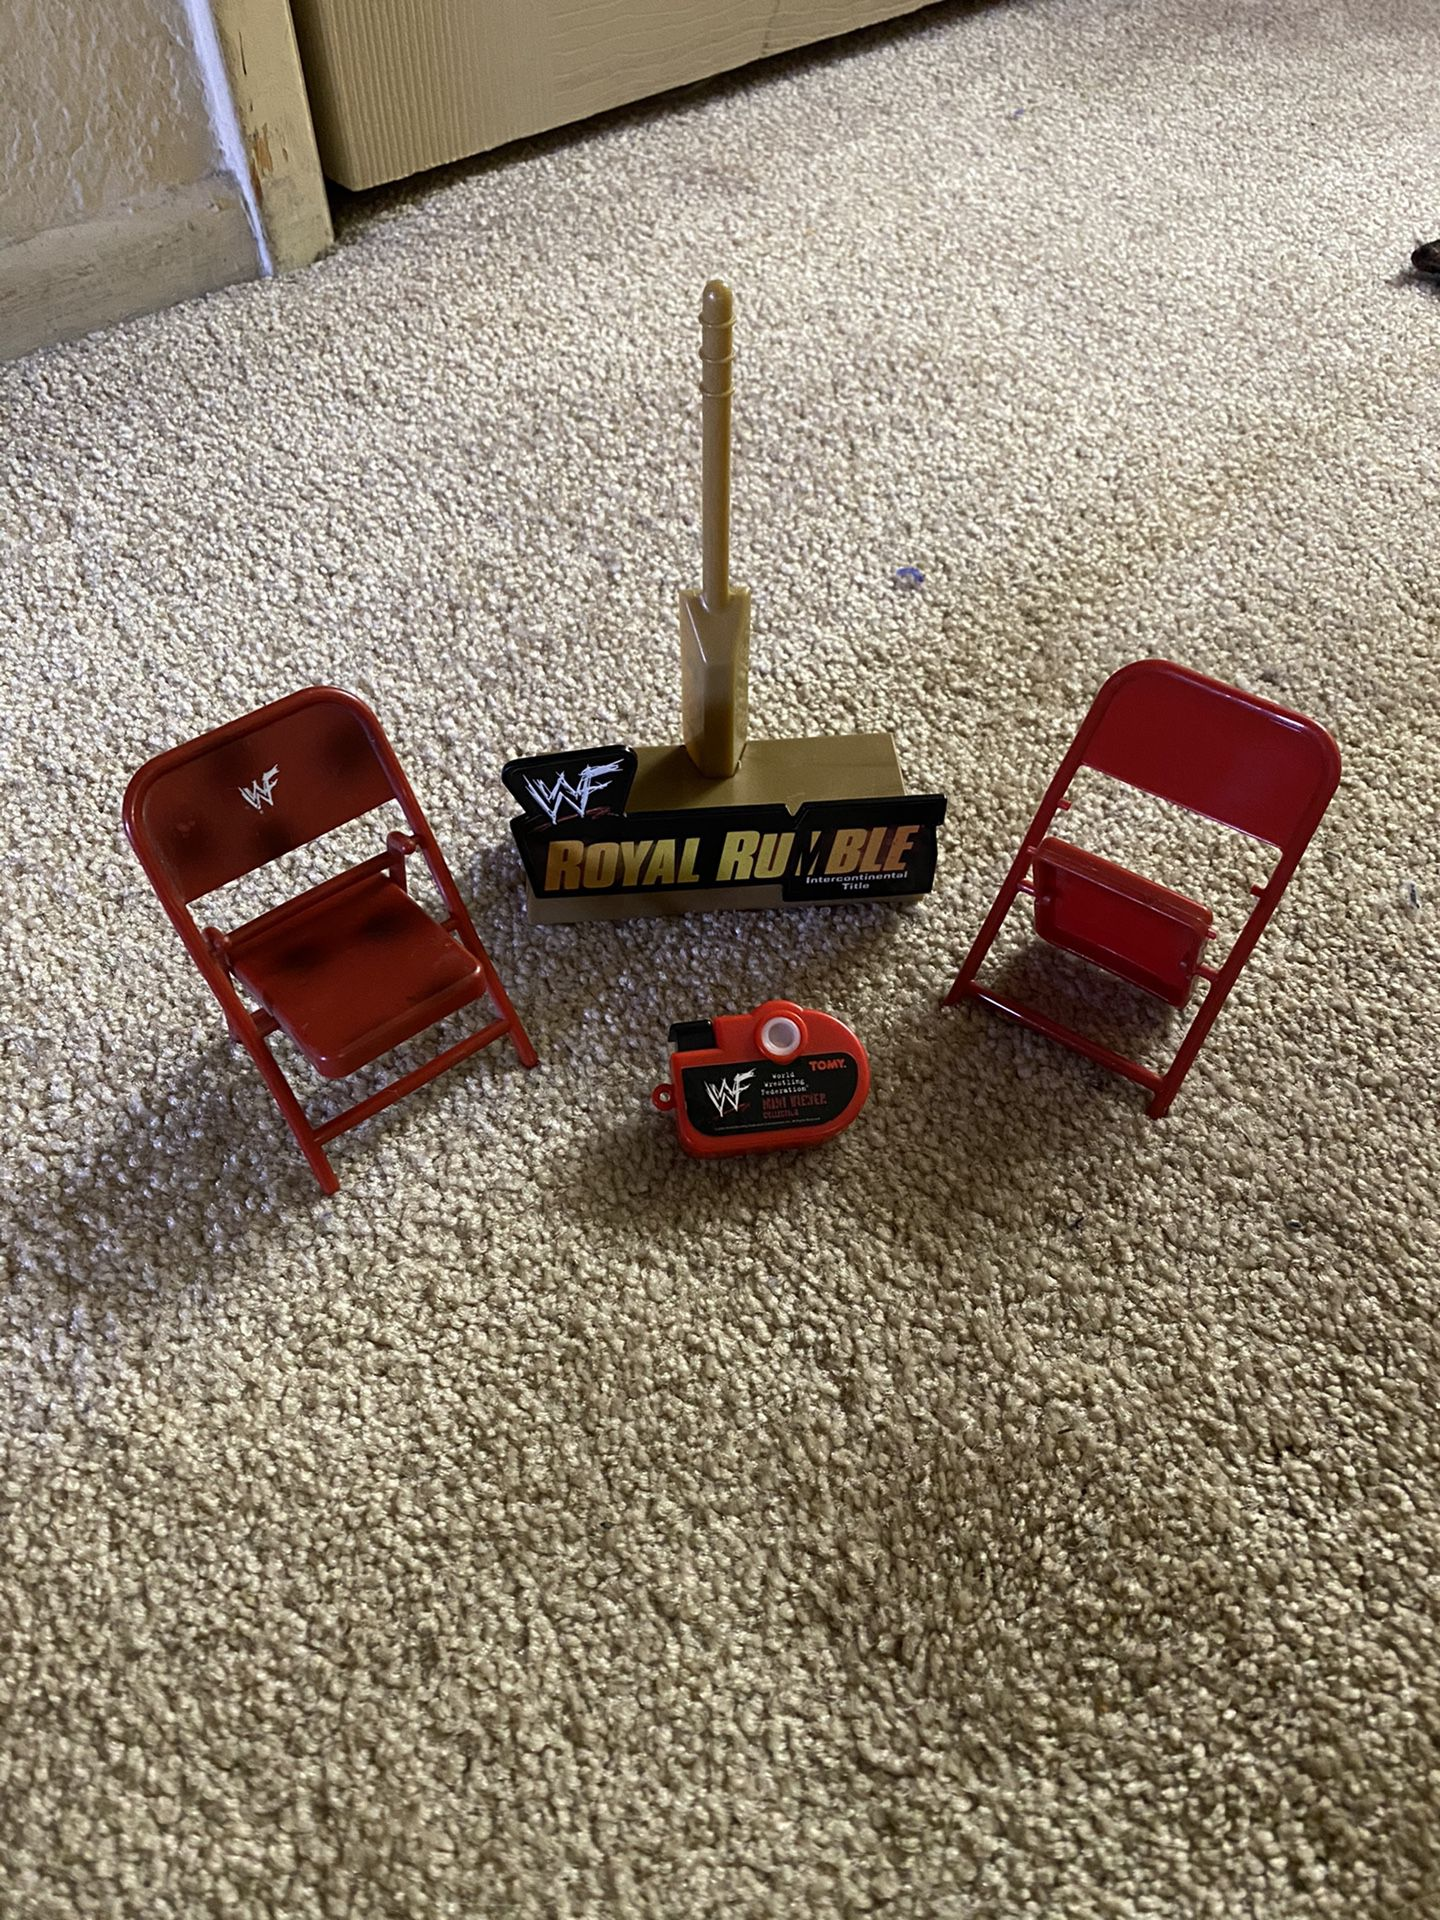 WWF Wrestling Toy Accessories 2 Chairs camera Royal Rumble Stand WWE ecw tna wcw aew